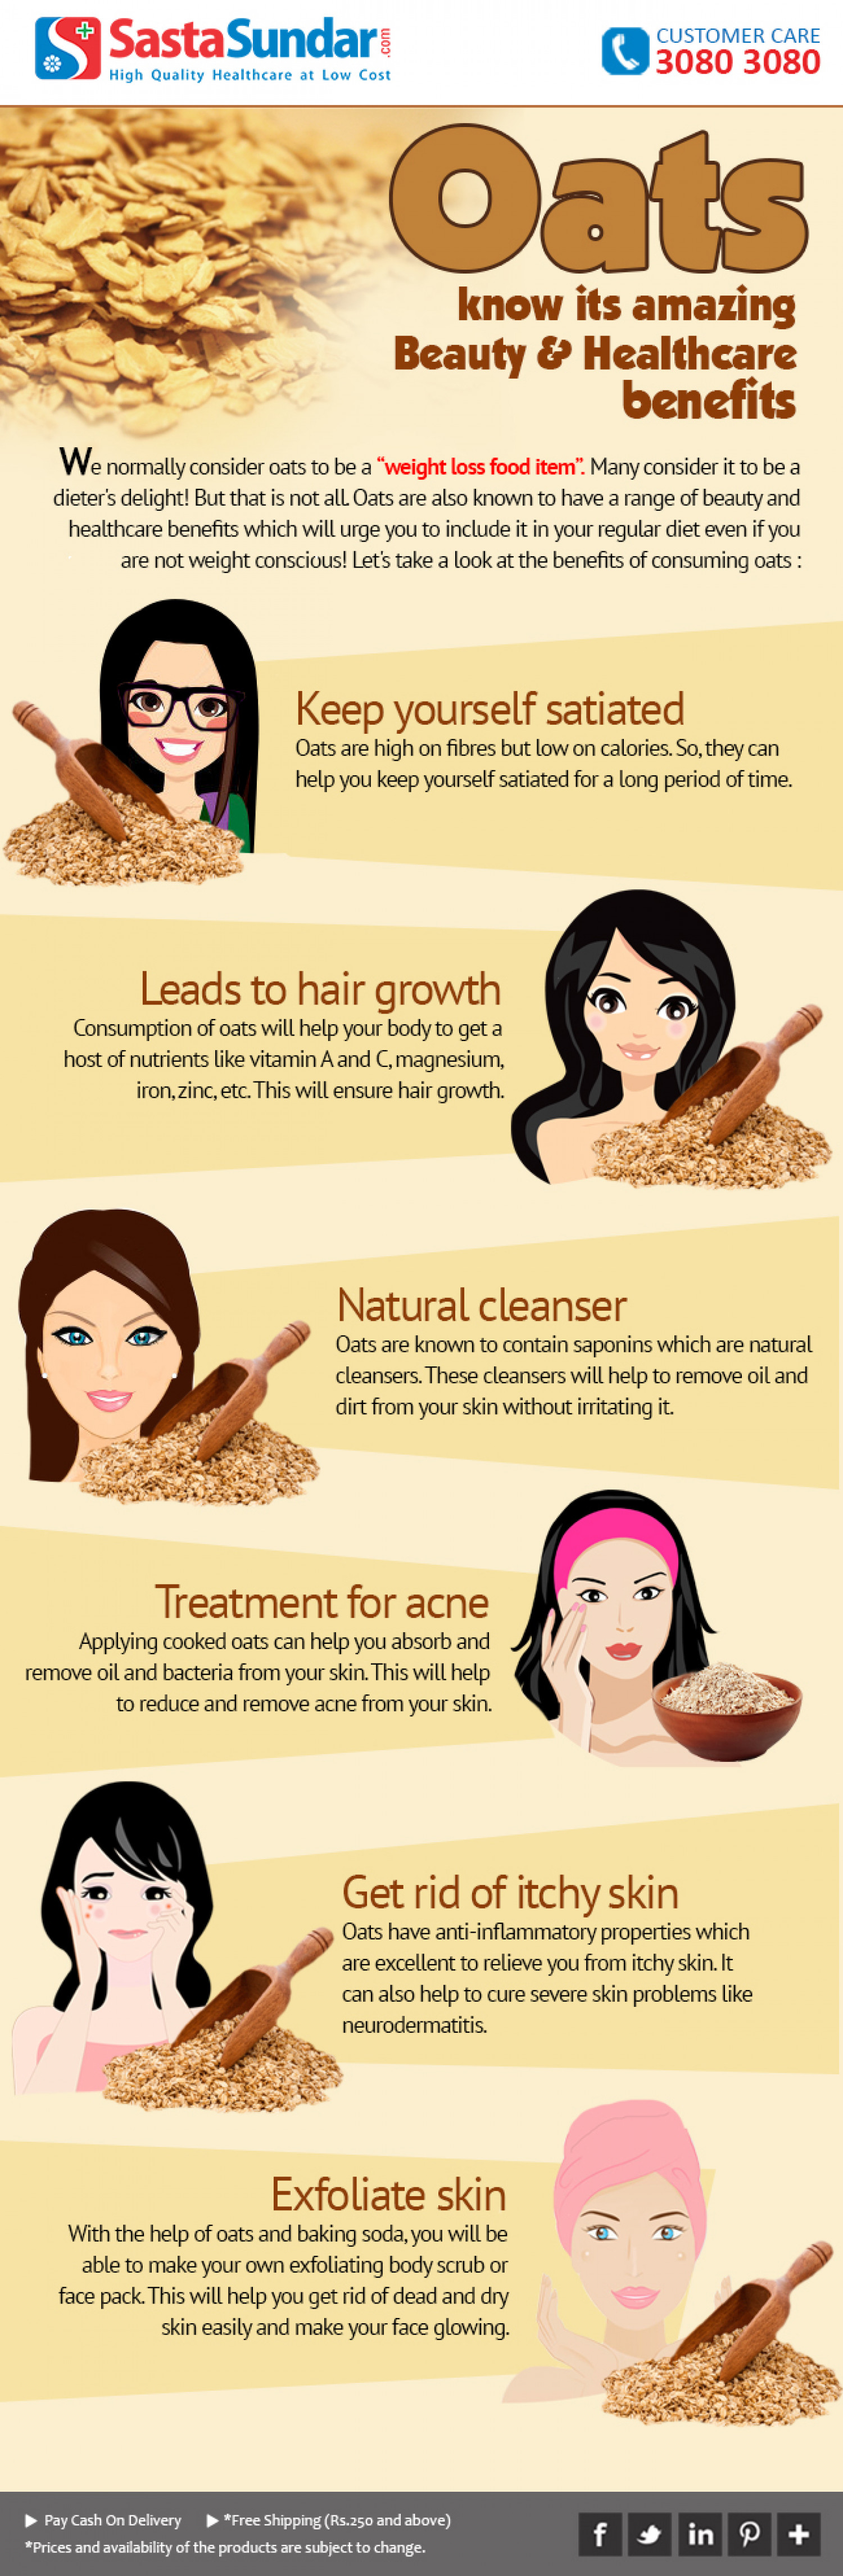 Oats - Know Its Amazing Beauty And Healthcare Benefits Infographic